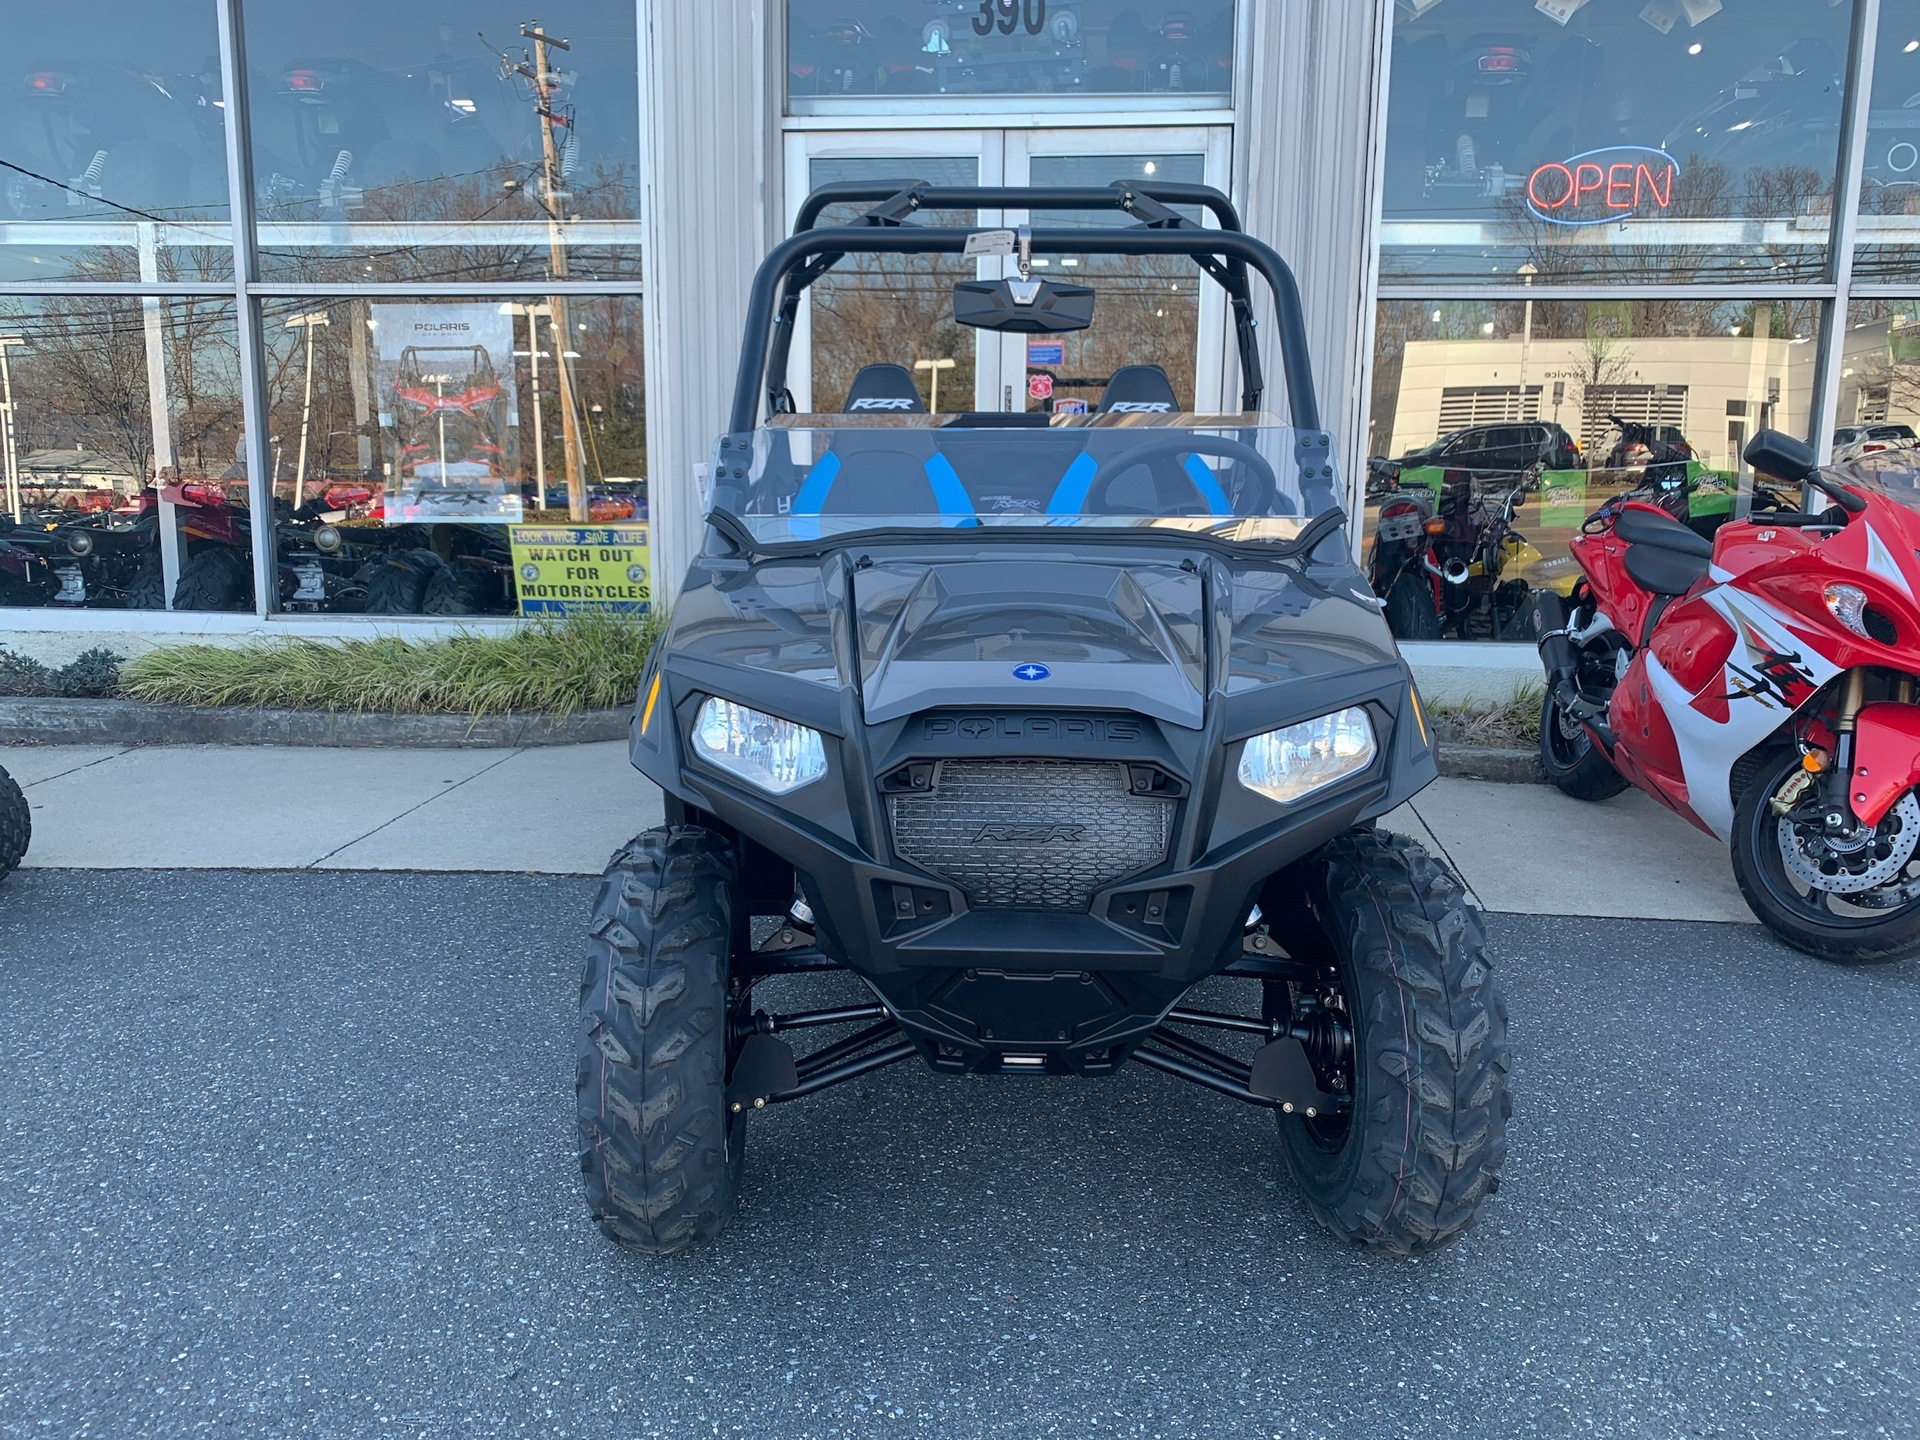 2020 Polaris RZR 570 Premium in Huntington Station, New York - Photo 2